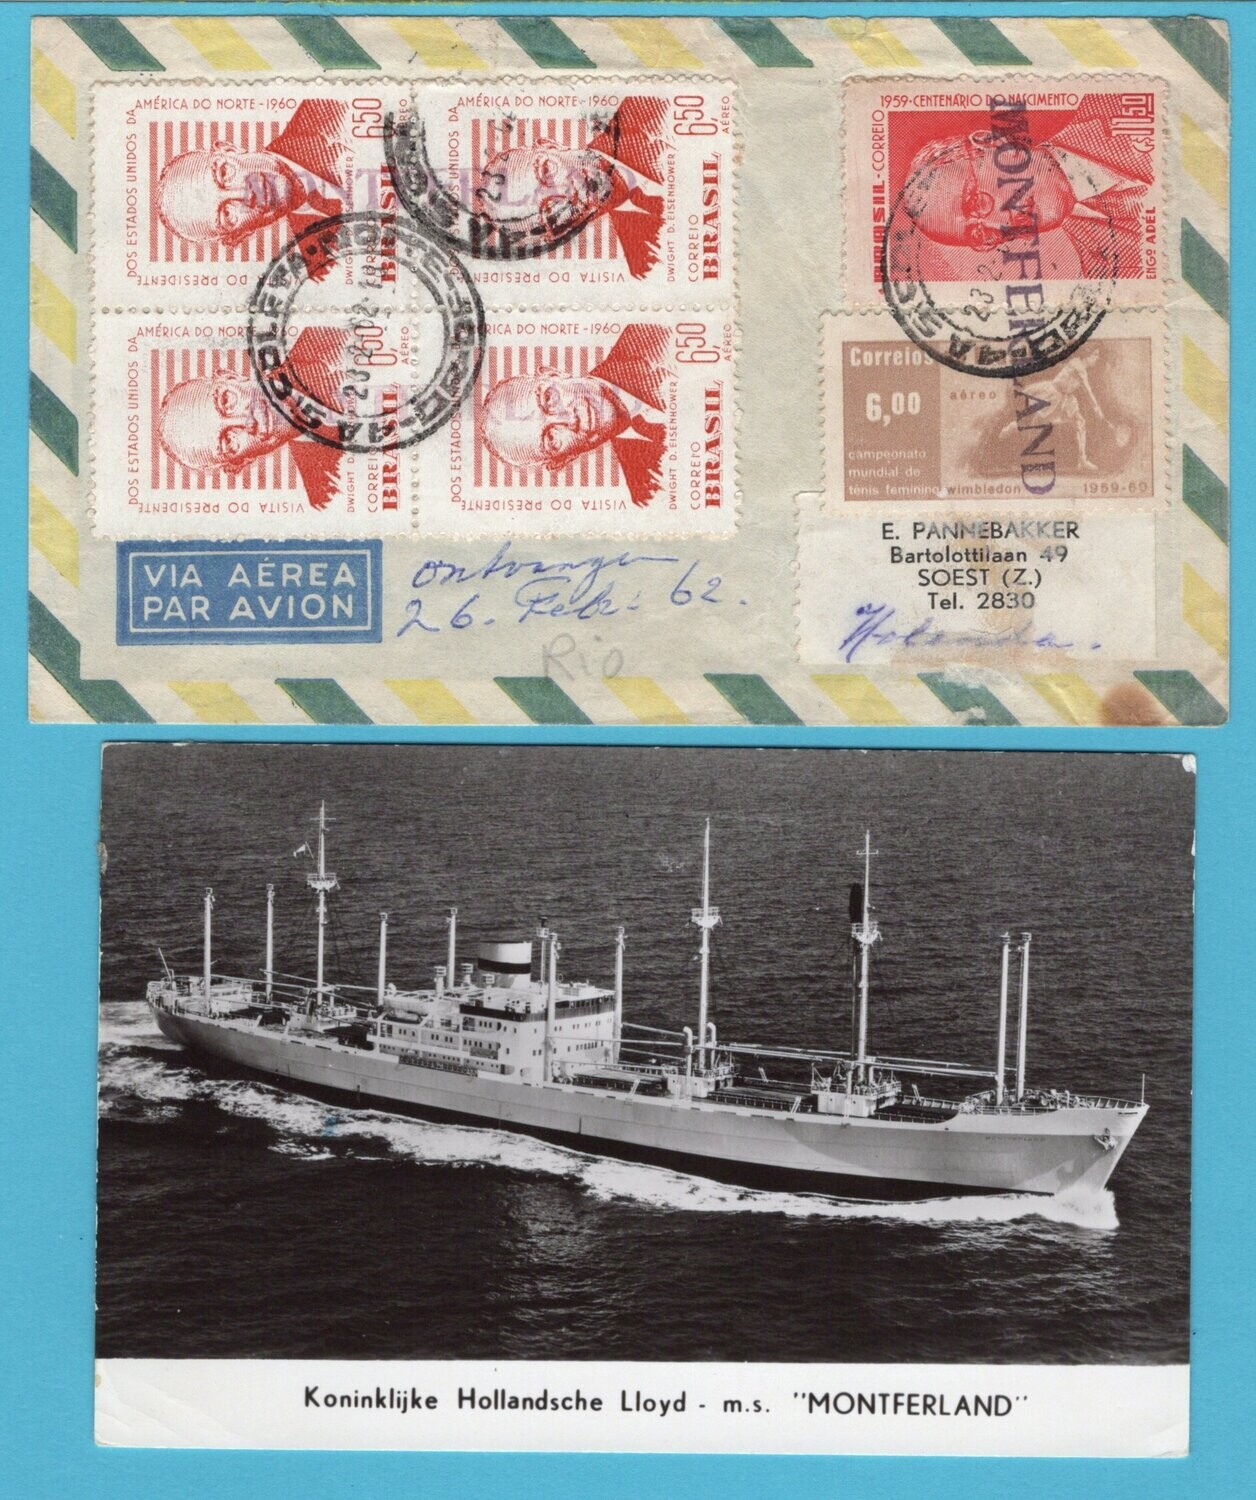 BRAZIL air cover 1962 RdJ from ship M.S. Montferland to Netherlands